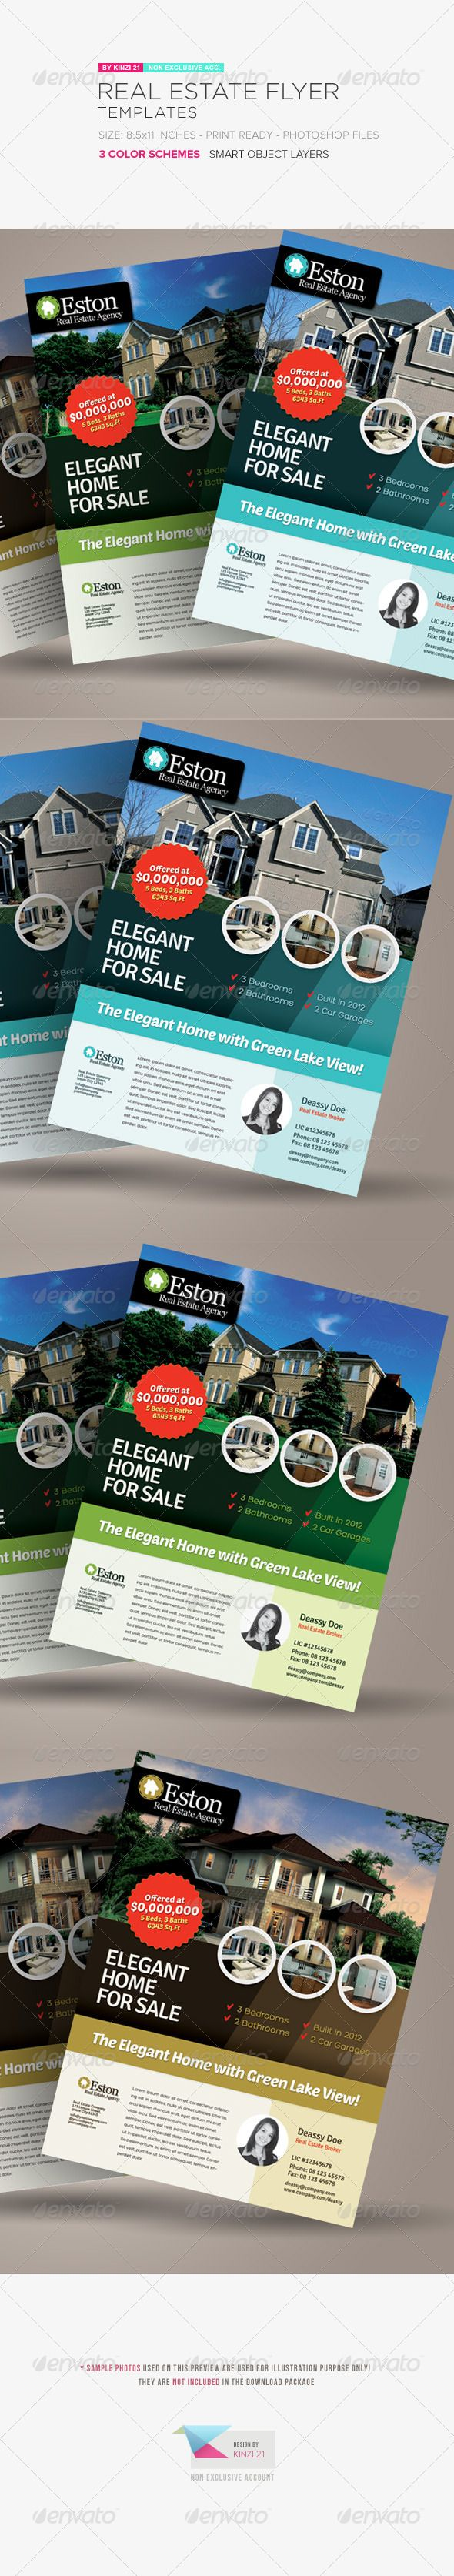 best ideas about sample flyers lawn care real estate flyer templates